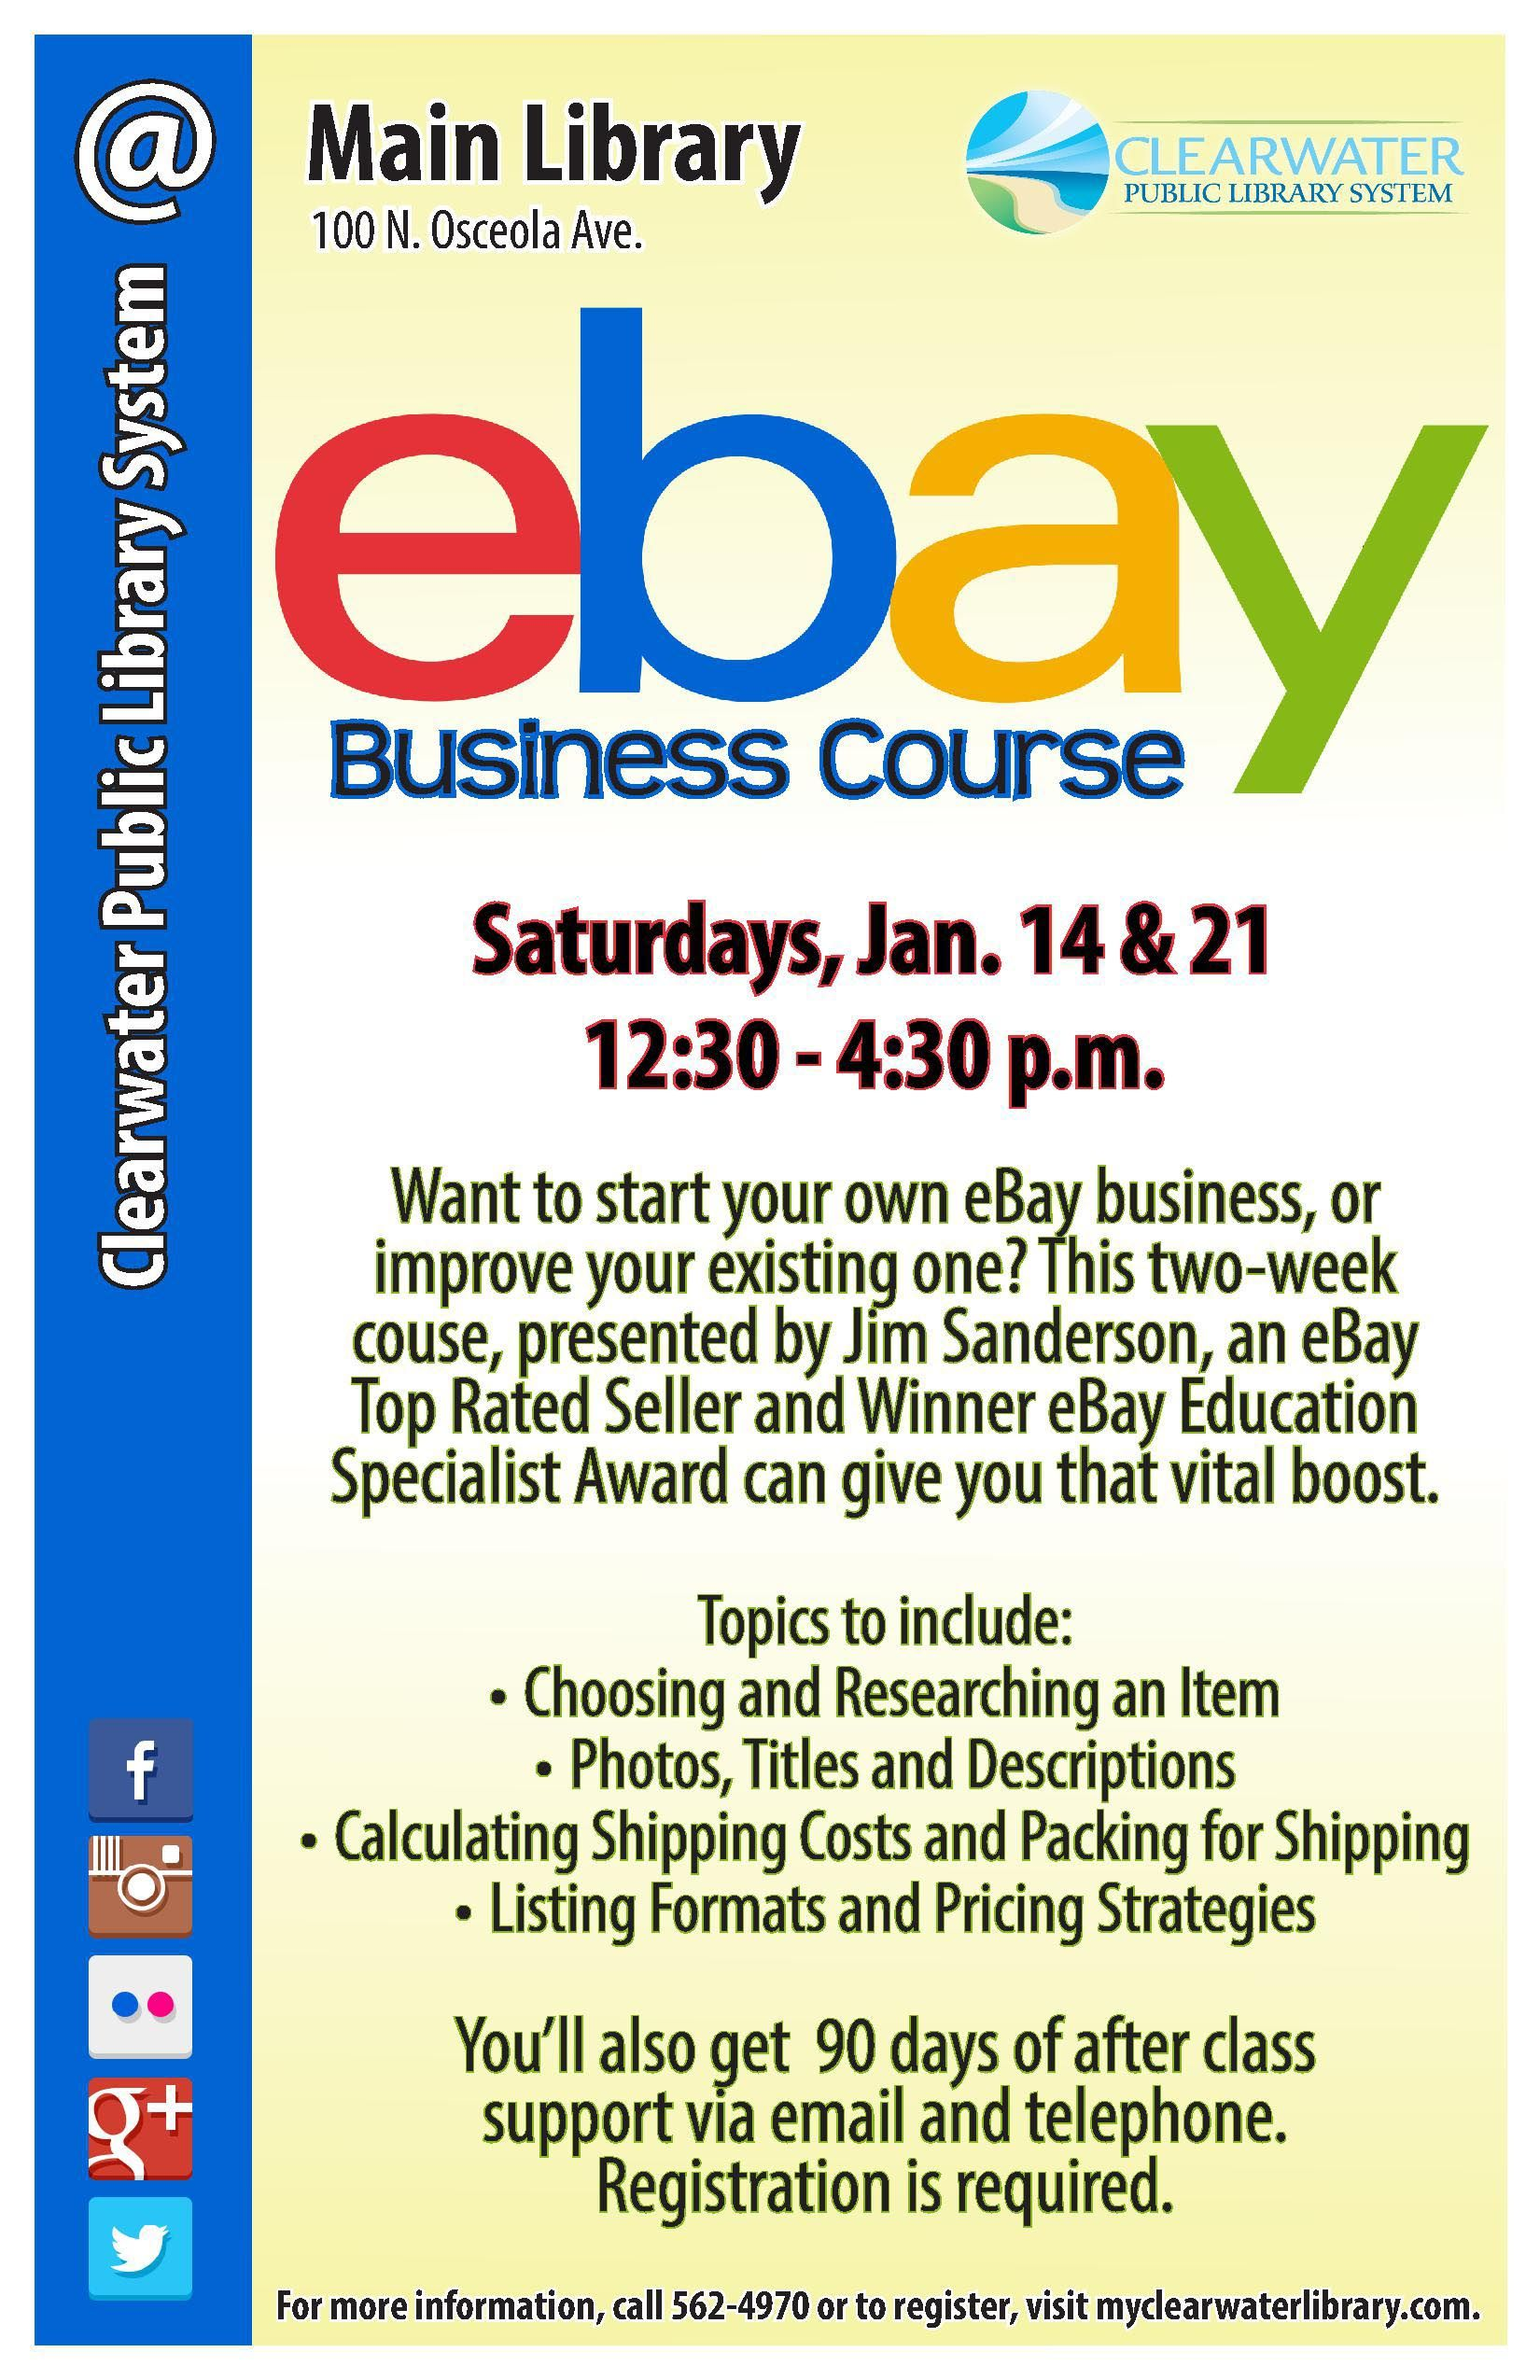 Want To Start Your Own Ebay Business Or Improve Your Existing One This Two Week Course Presented By Jim Sanderson An Ebay To Main Library Education Business